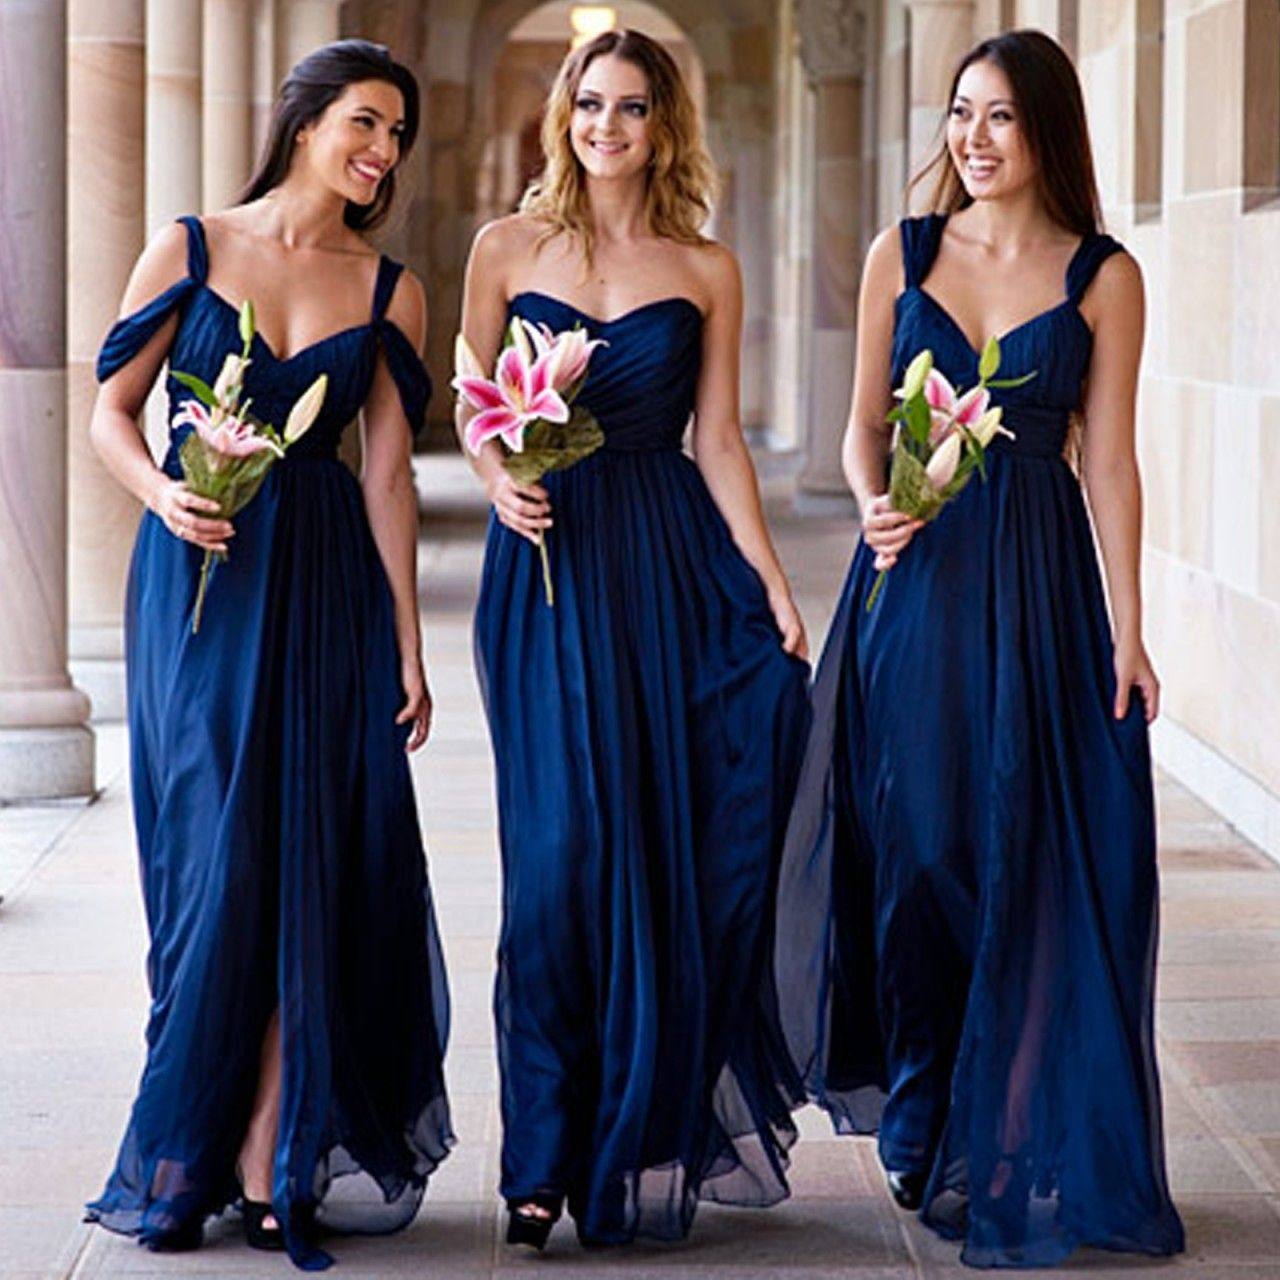 bridesmaids dresses - Stupendous Navy Bridesmaid Dresses